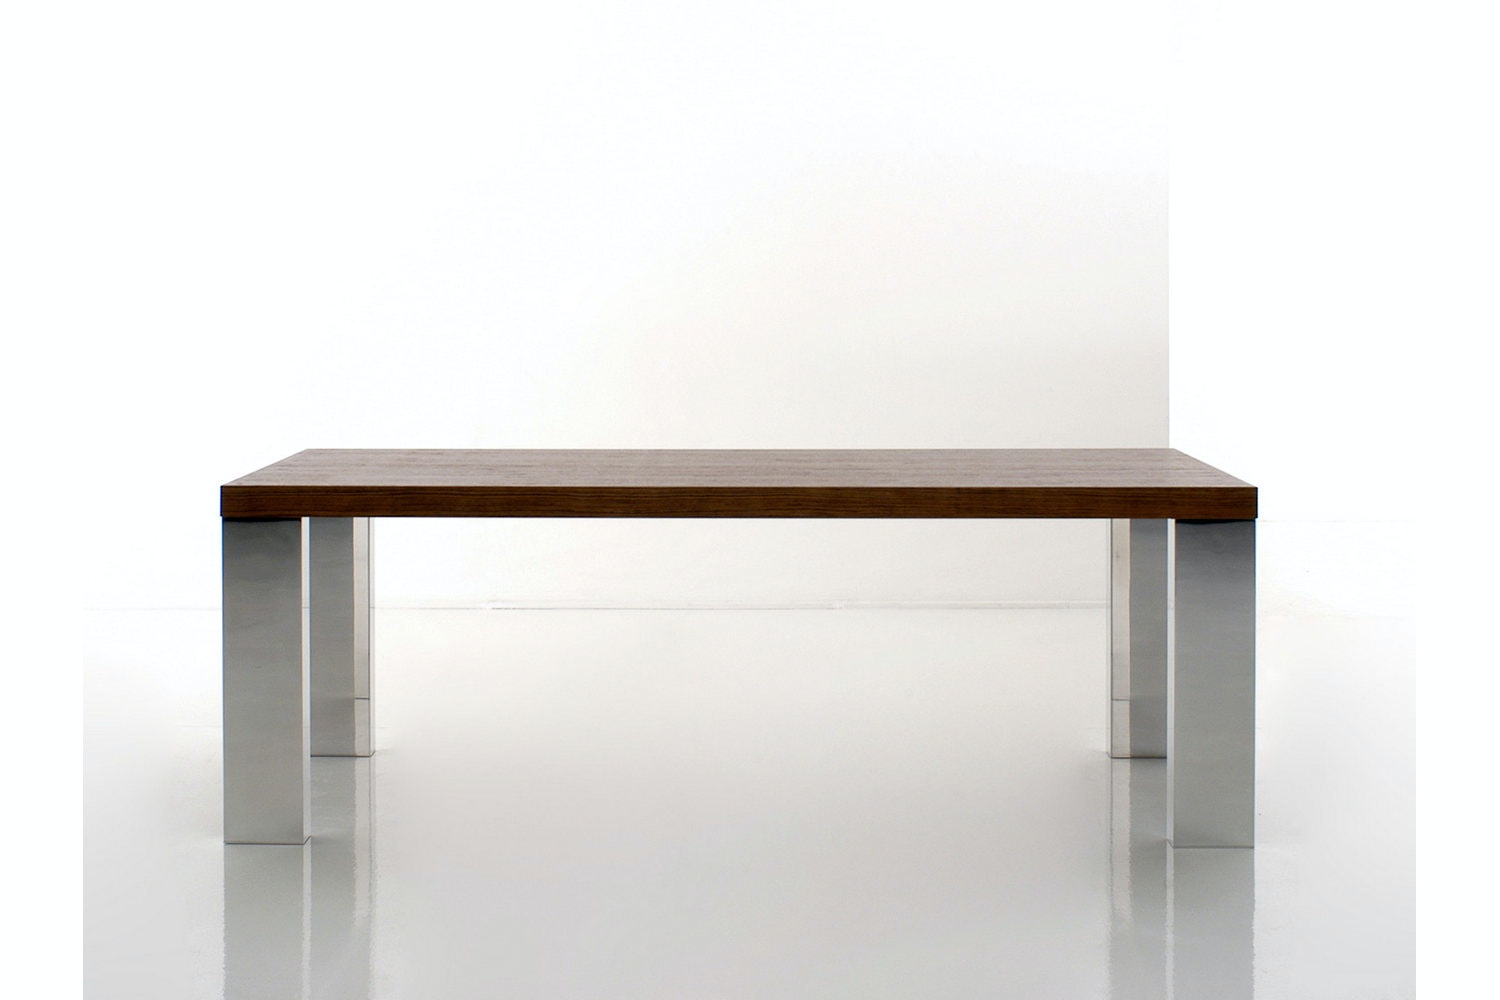 P.04 Table by Piero Lissoni for Porro